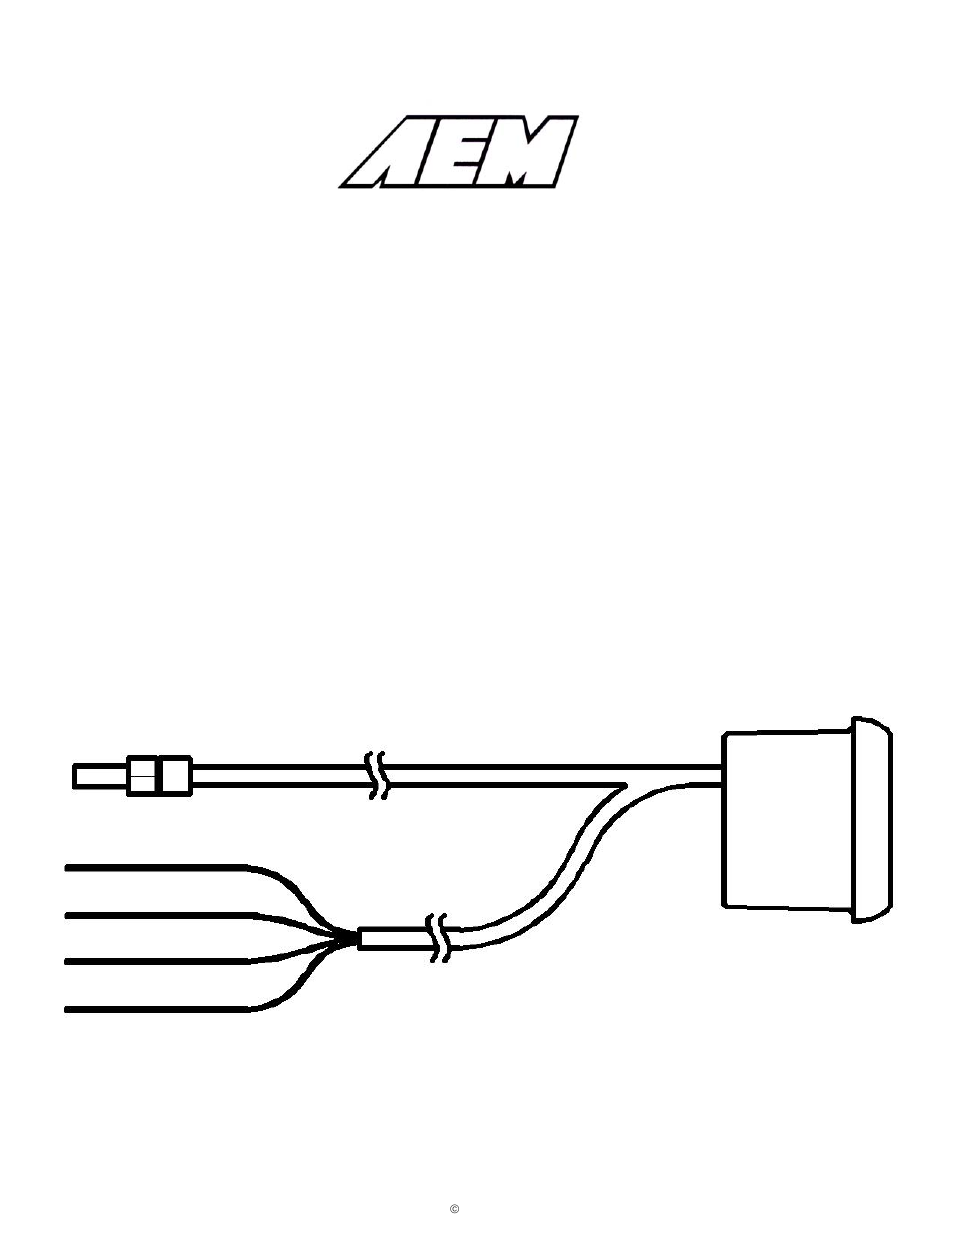 Aem Oil Pressure Gauge Wiring Diagram Solutions Harley Free Download